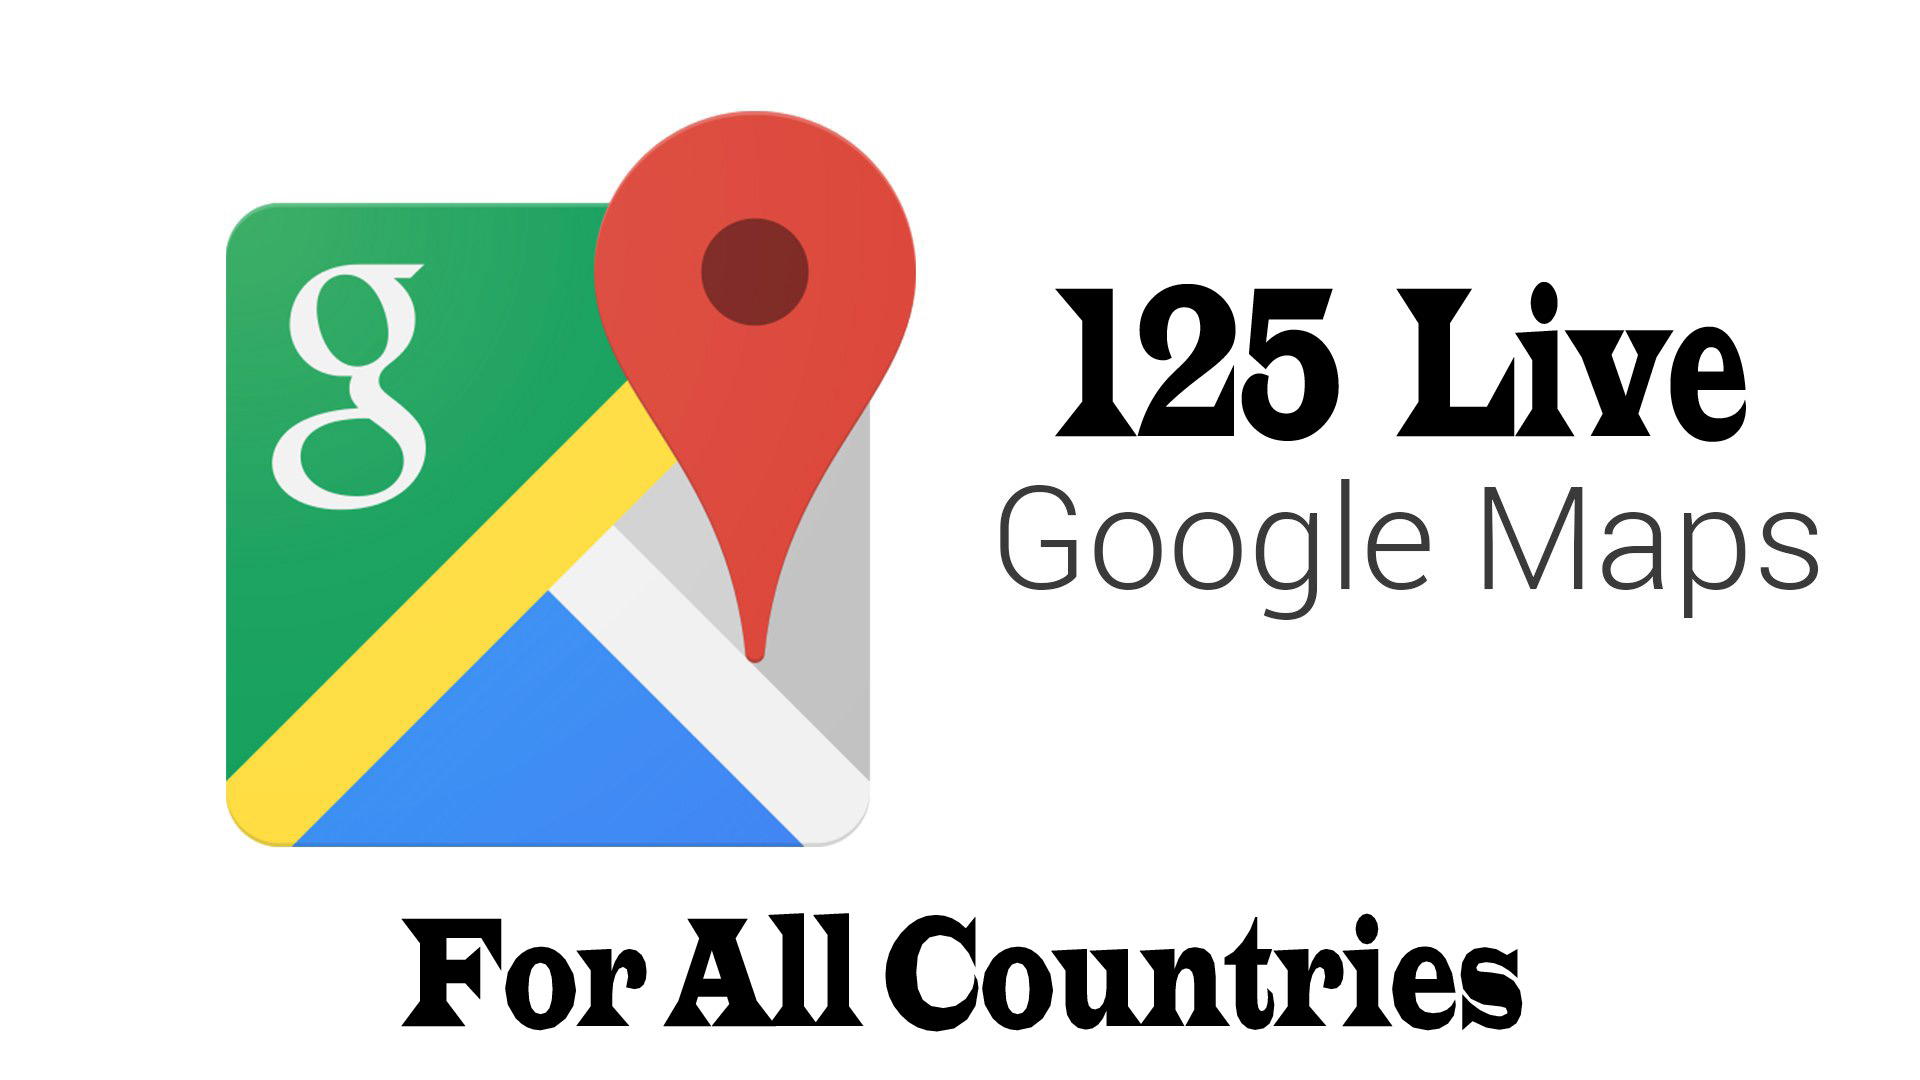 I Will Manually Build 125 Live Google Maps Citation With 5 High Quality PBN